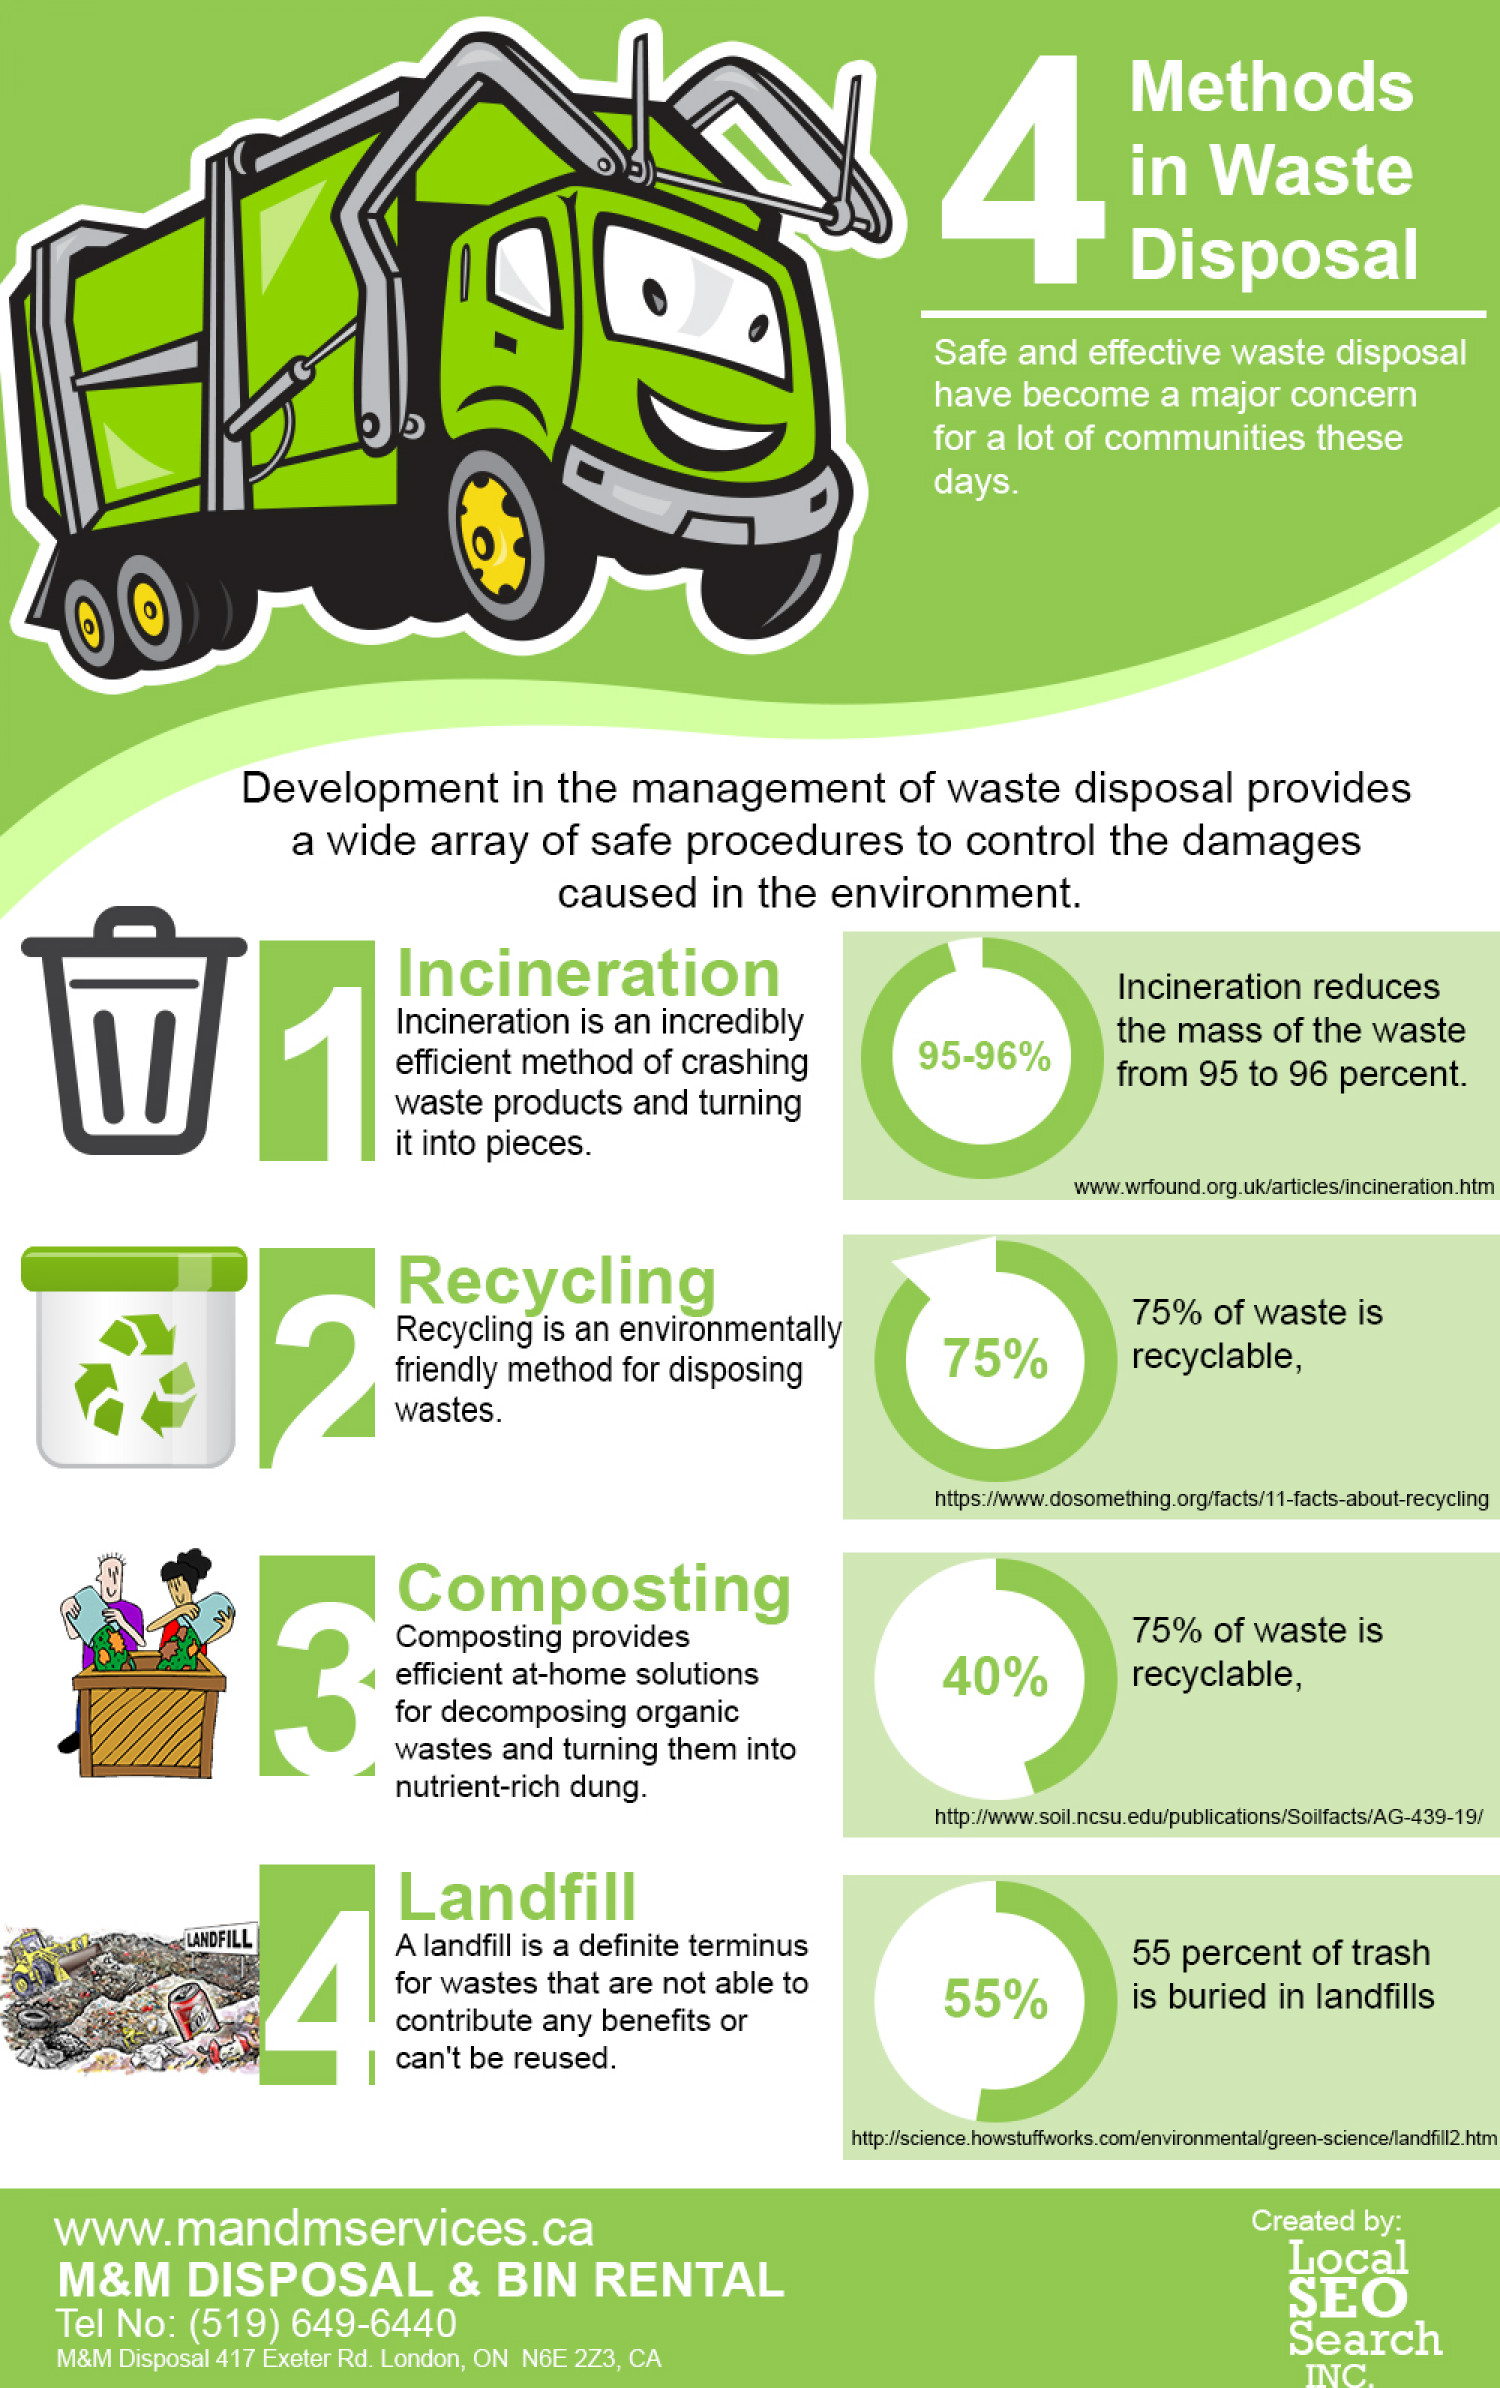 4 Methods in Waste Disposal Infographic